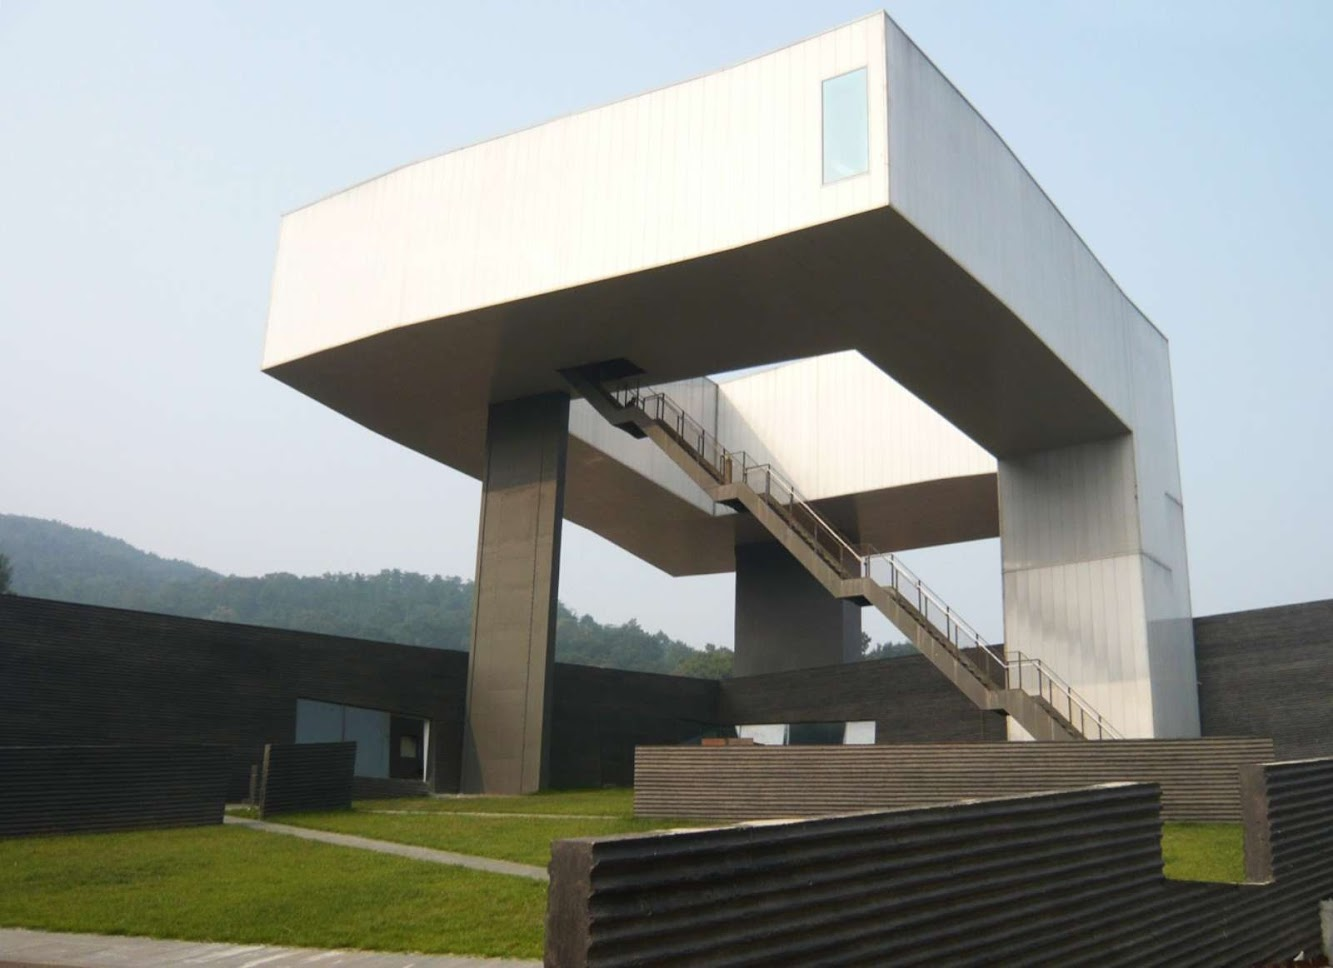 Sifang Art Museum by Steven Holl